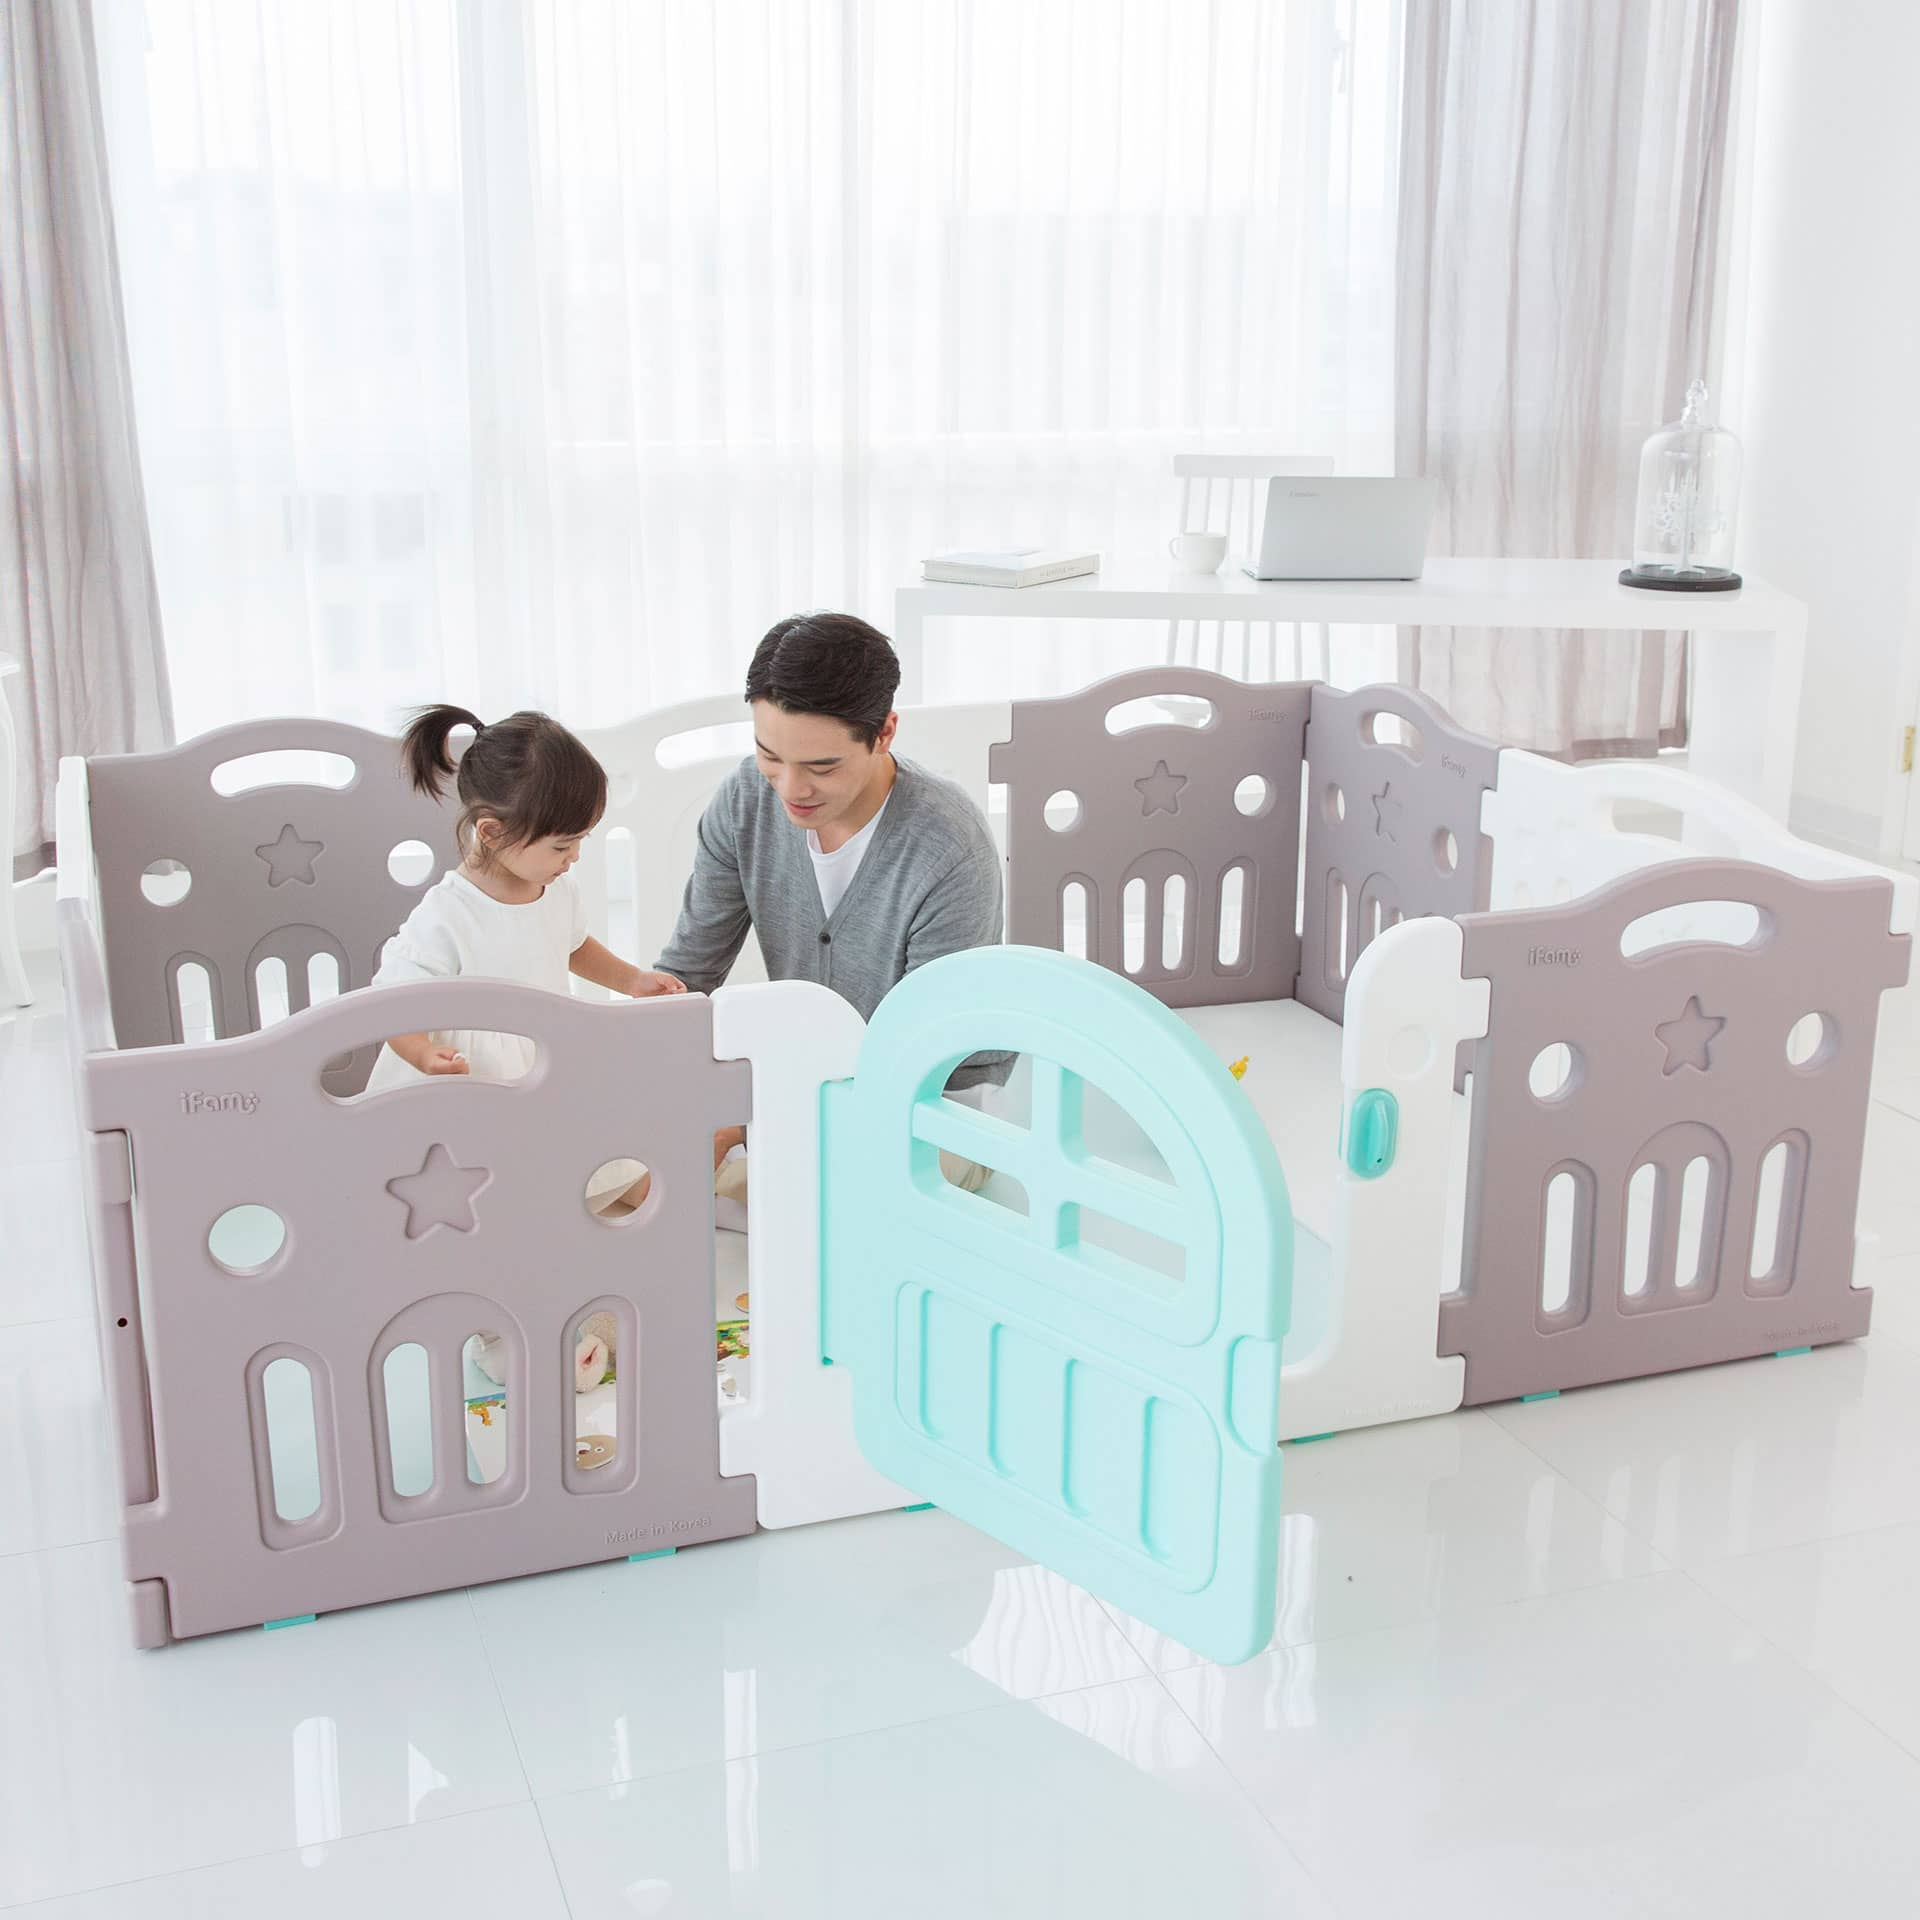 Marshmallow Plus Play Yard is the biggest IFAM play yards for parents and kids to play inside.